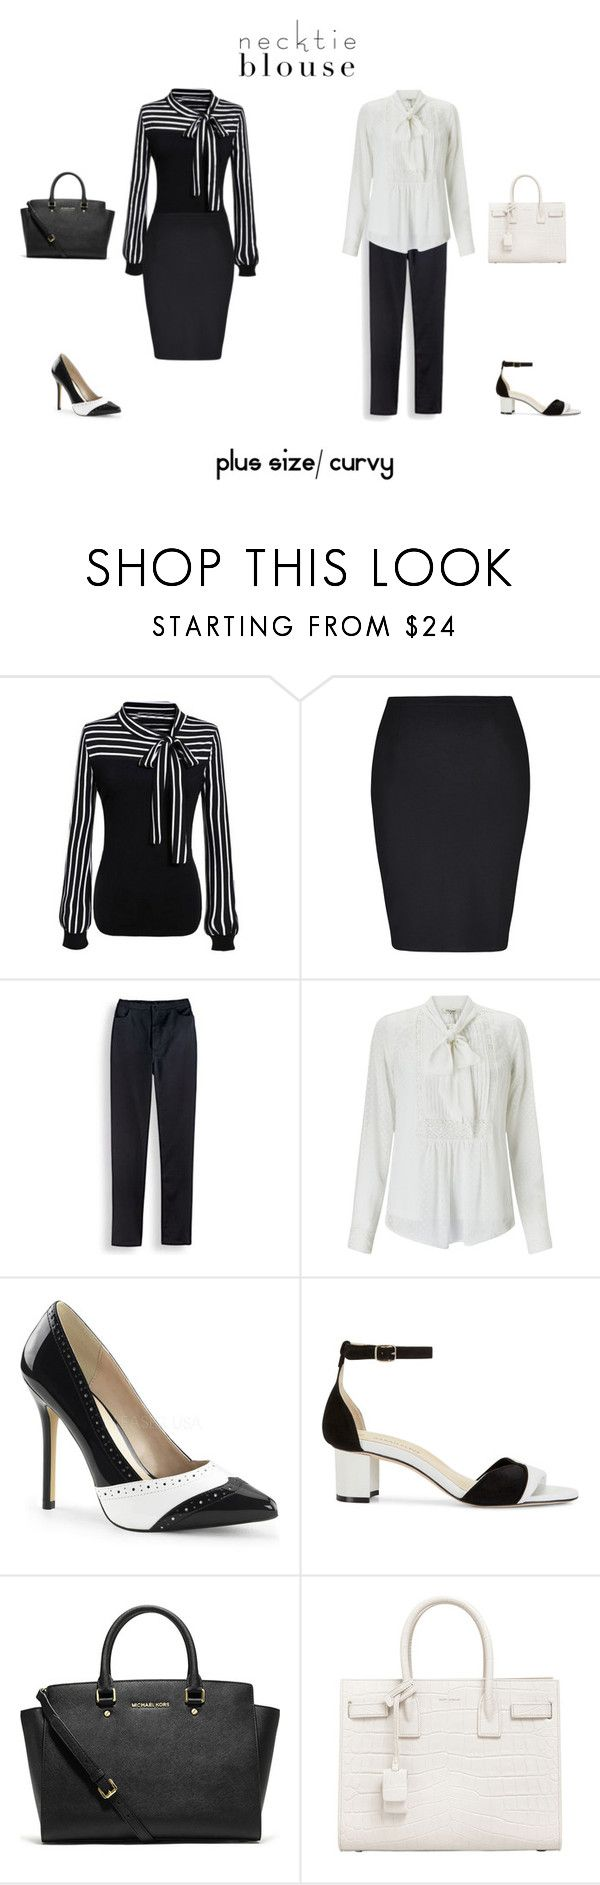 """Plus Size/ Curvy Necktie Blouse Outfits"" by jessicasanderstx ❤ liked on Polyvore featuring WithChic, City Chic, Blair, Somerset by Alice Temperley, Sarah Flint, Michael Kors, Yves Saint Laurent and necktieblouse"